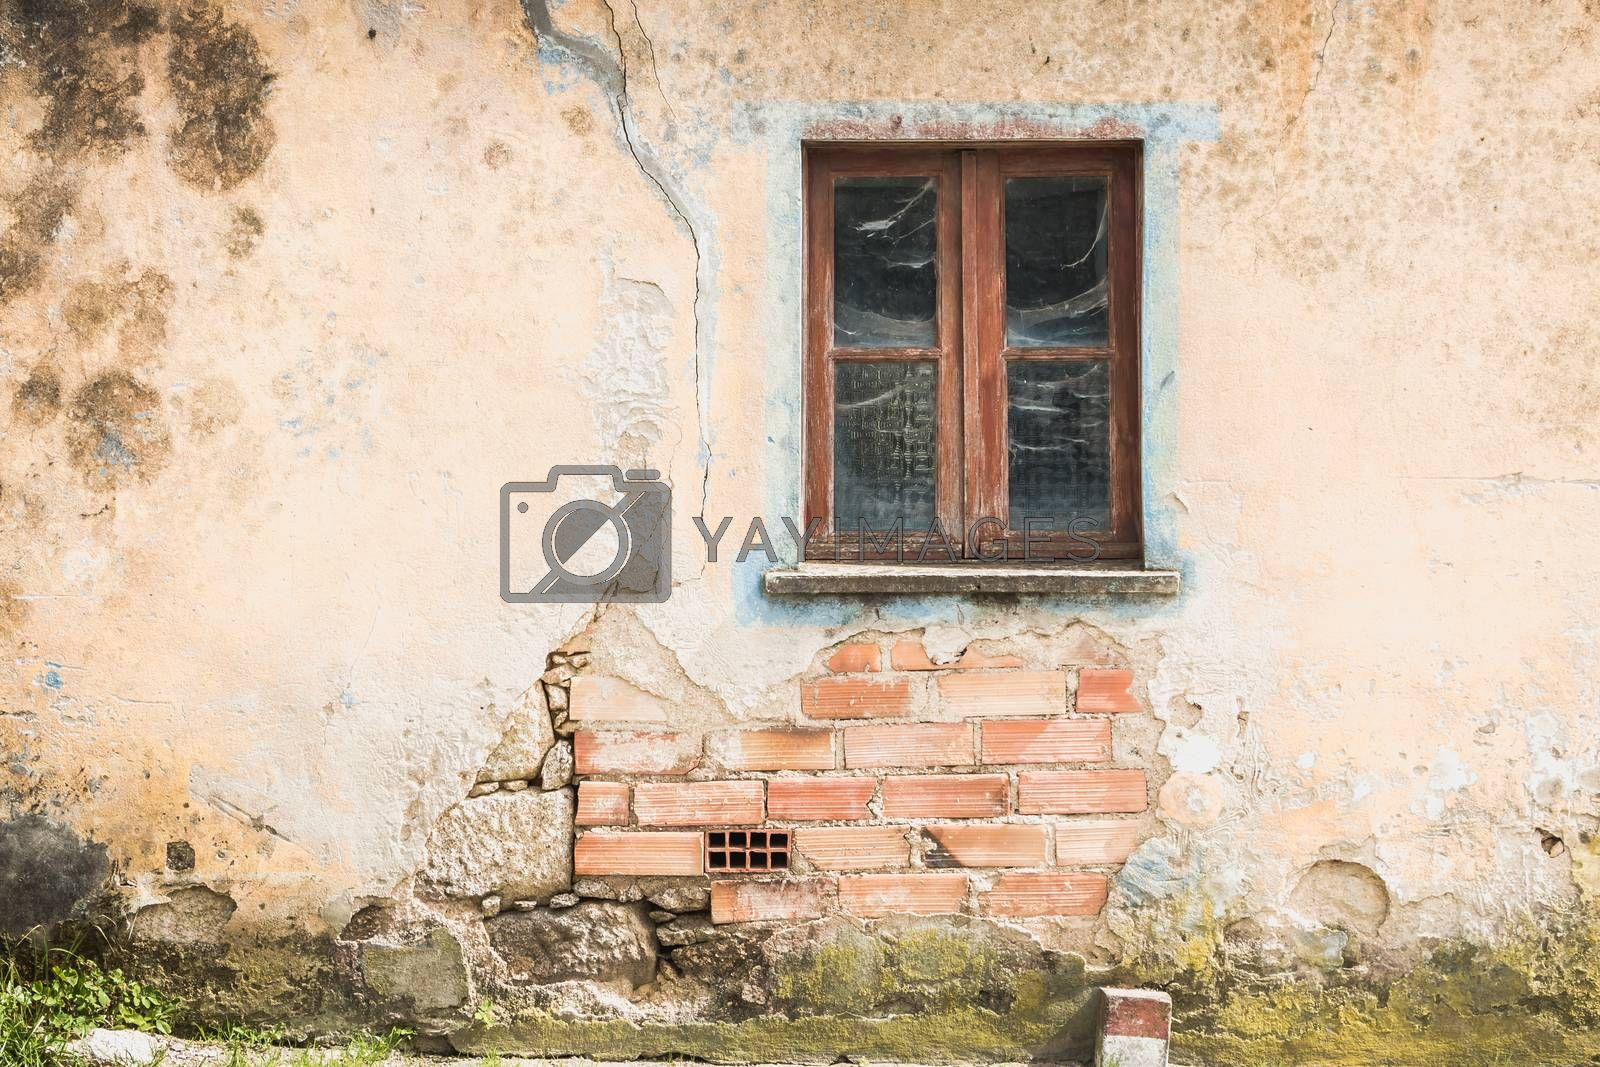 architectural detail of a traditional ancient house in the north of Portugal